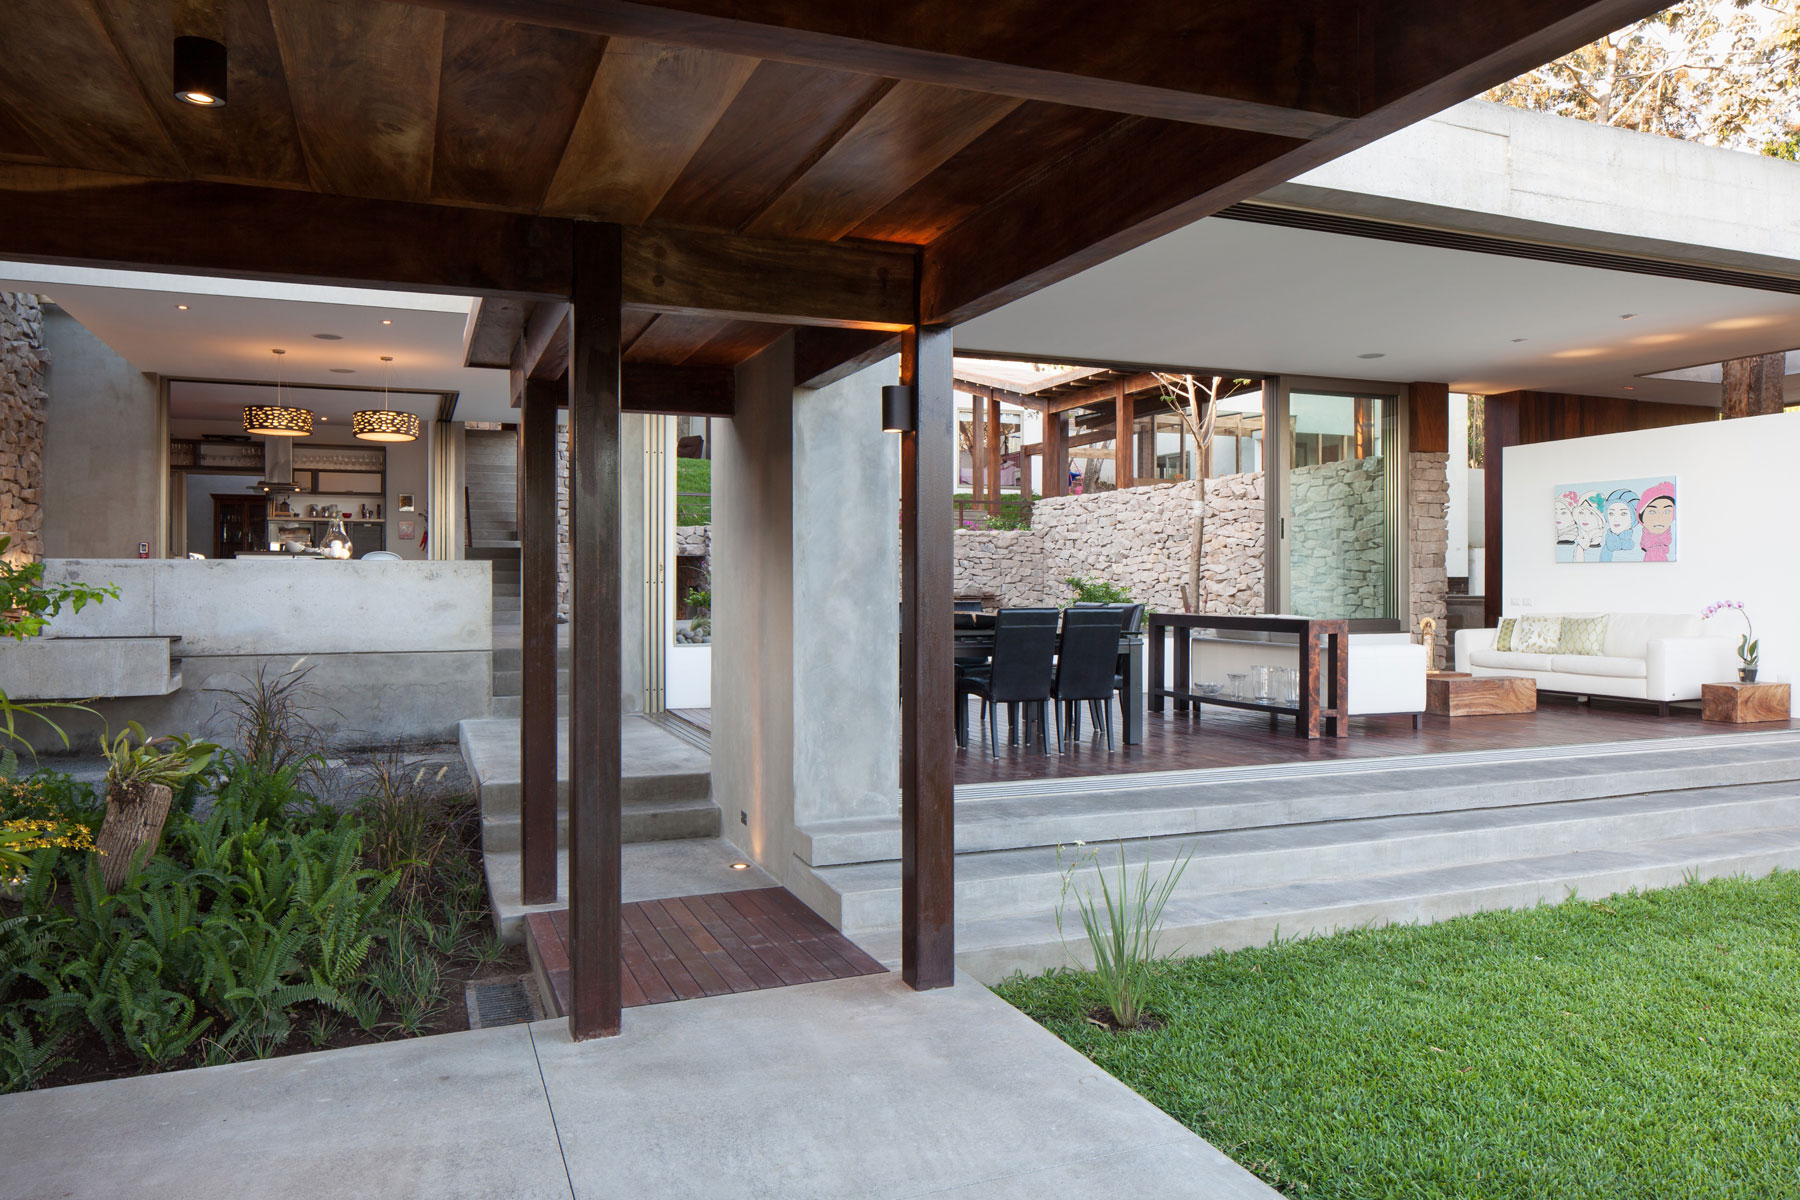 Modern rustic sensation of garden house in el salvador by for Home designs with garden